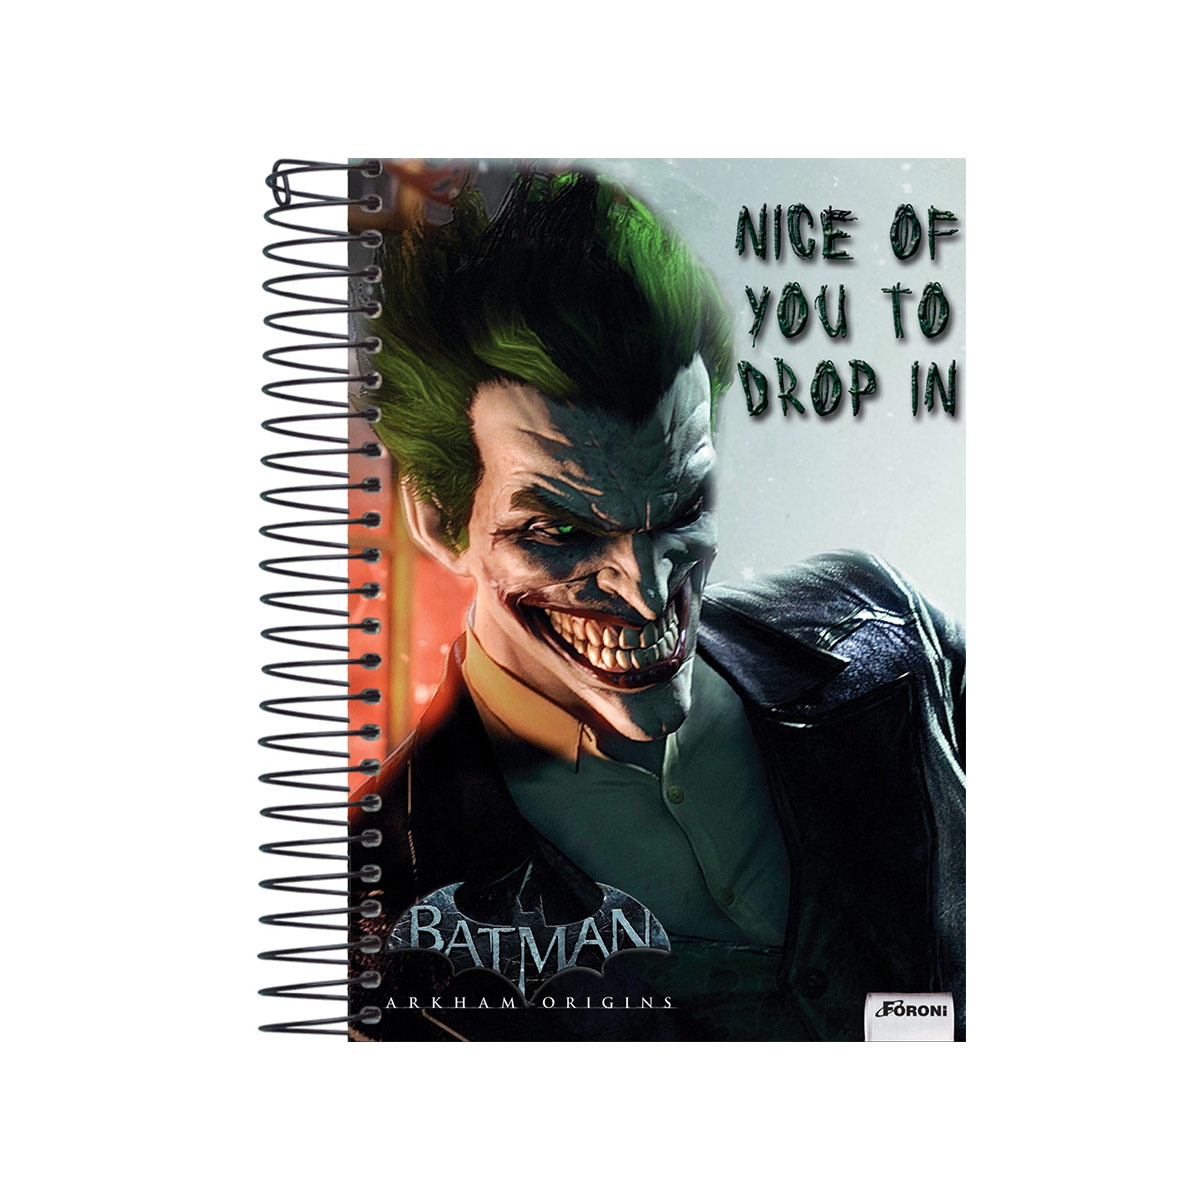 Agenda Diária 2015 The Joker Nice Of You to Drop In